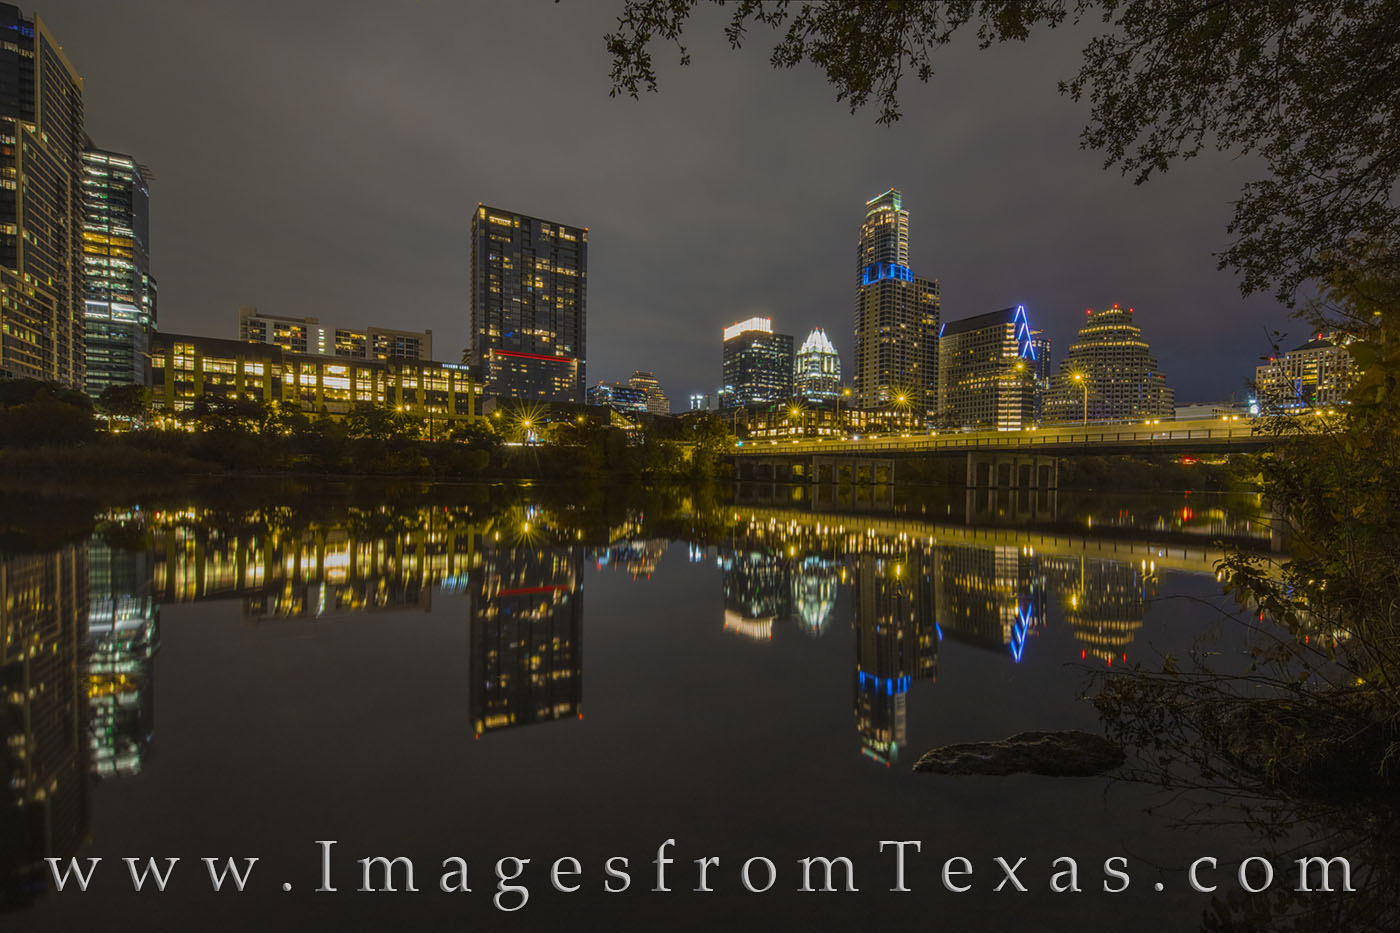 austin skyline, downtown, austonian, frost tower, ladybird lake, town lake, austin texas, reflections, night, evening, photo